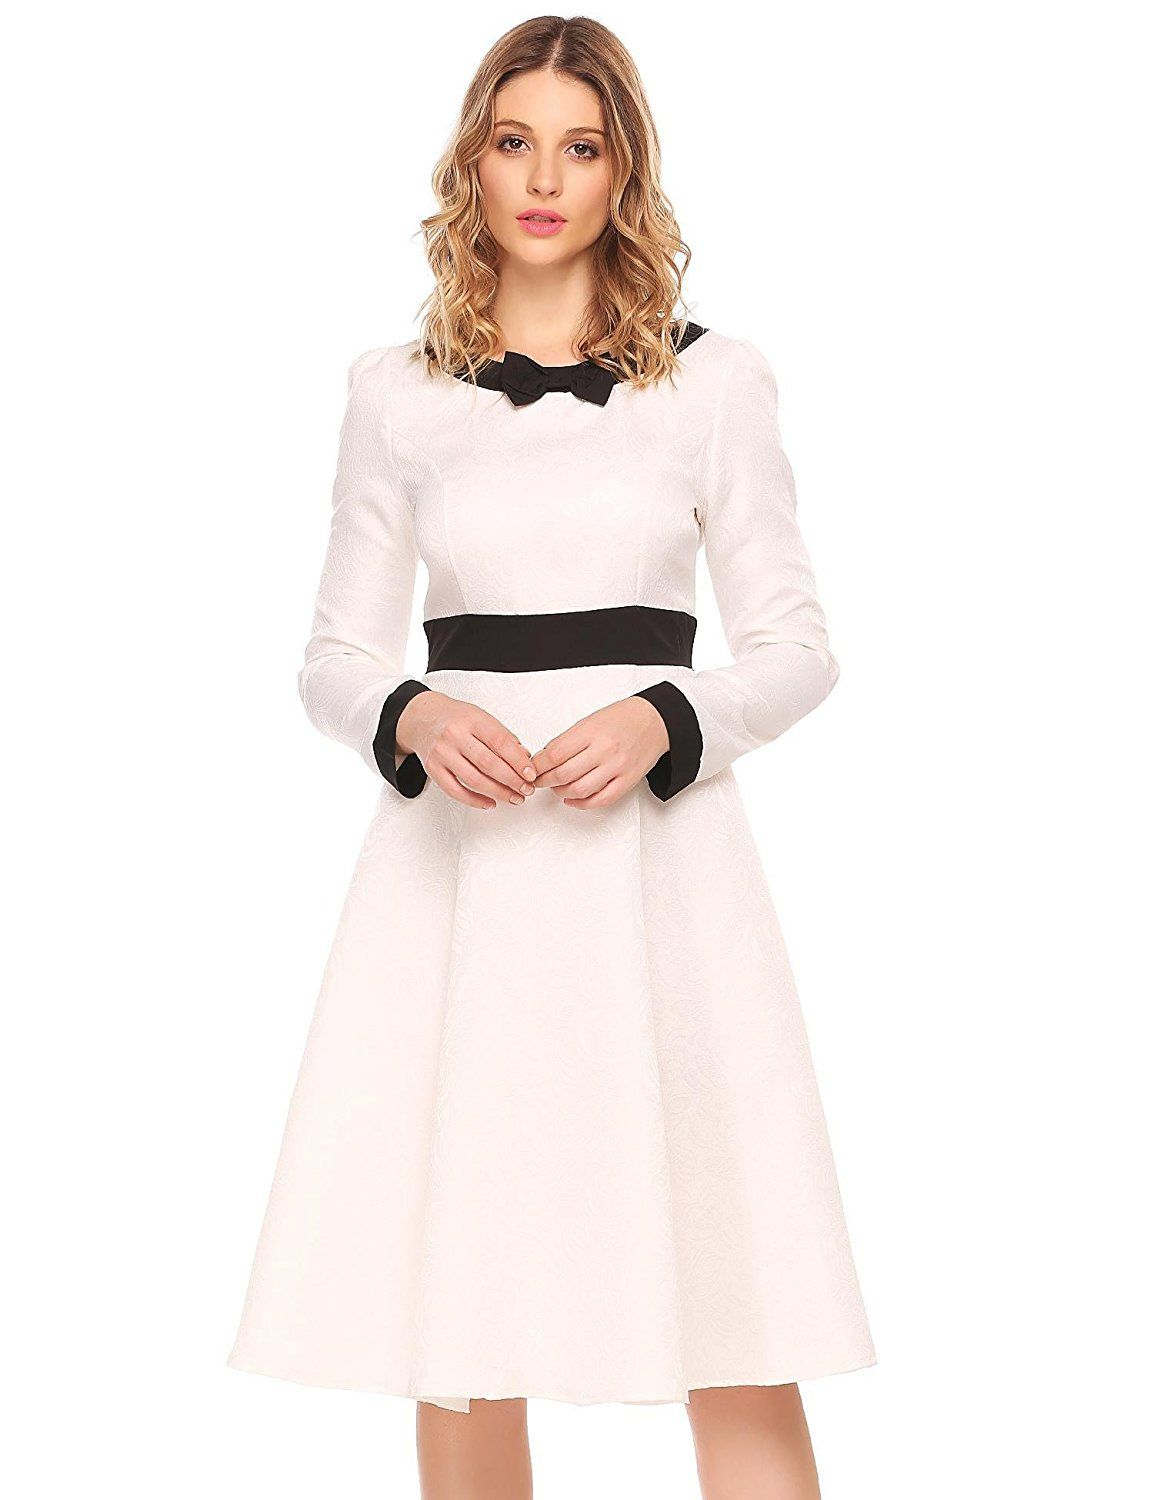 Dresses for a winter wedding reception  ACEVOG Womenus Vintage Long Sleeve Swing Cocktail Party Dress